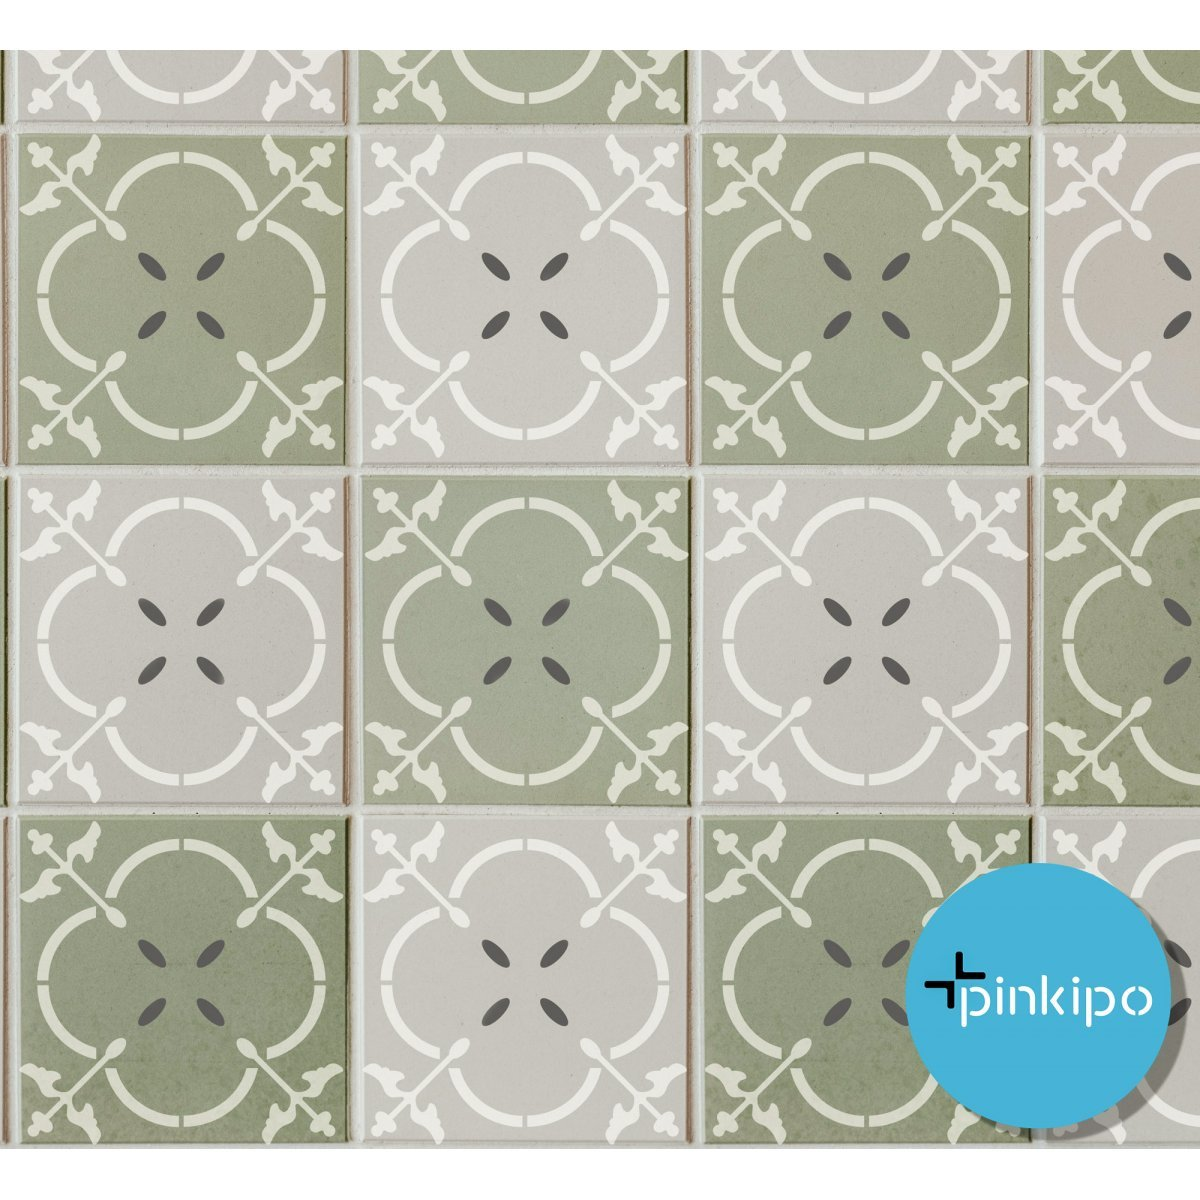 TURQUOISE TILE STENCIL / Reusable Allover Large Wall Stencils for Painting